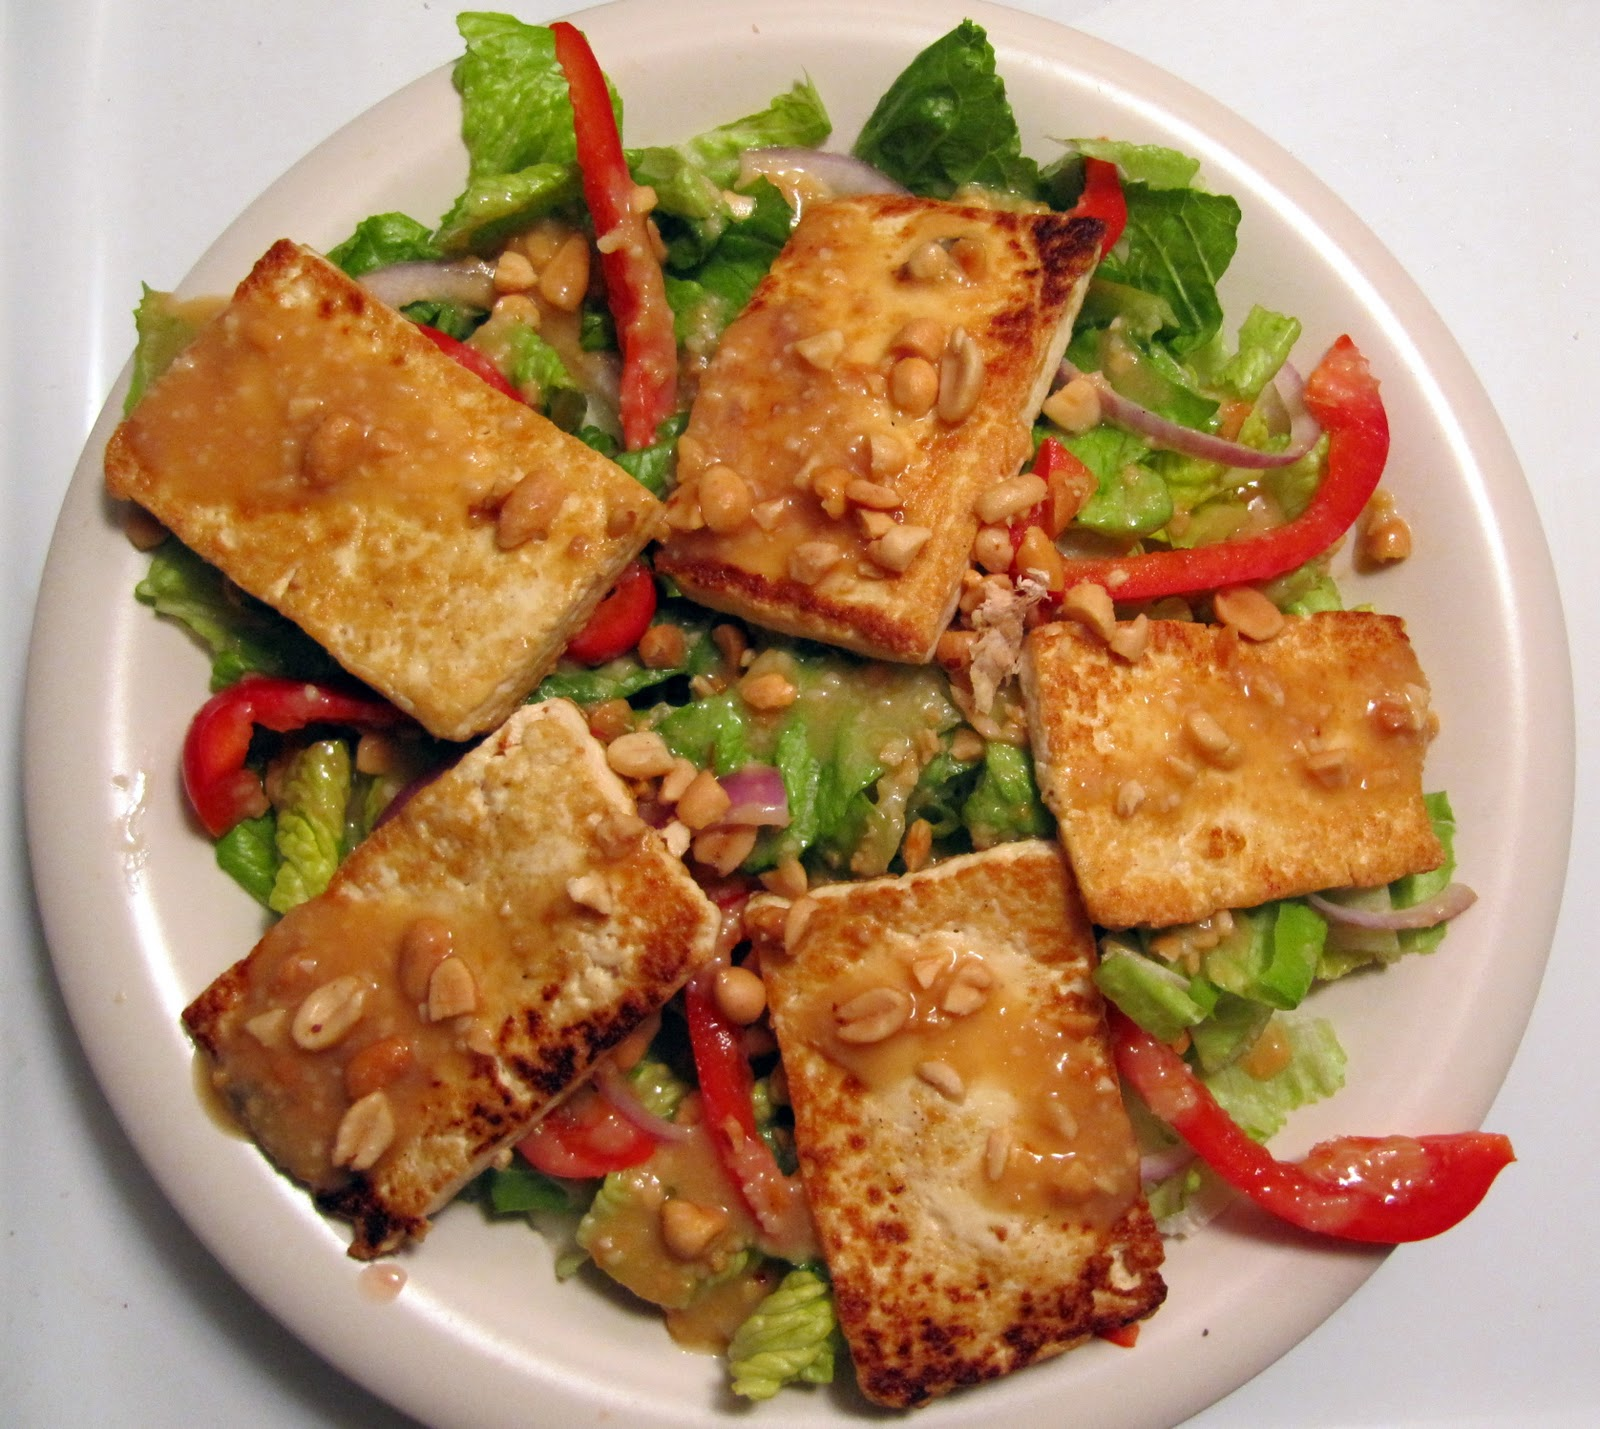 Grad Gastronomy: Seared tofu salad with miso-ginger dressing